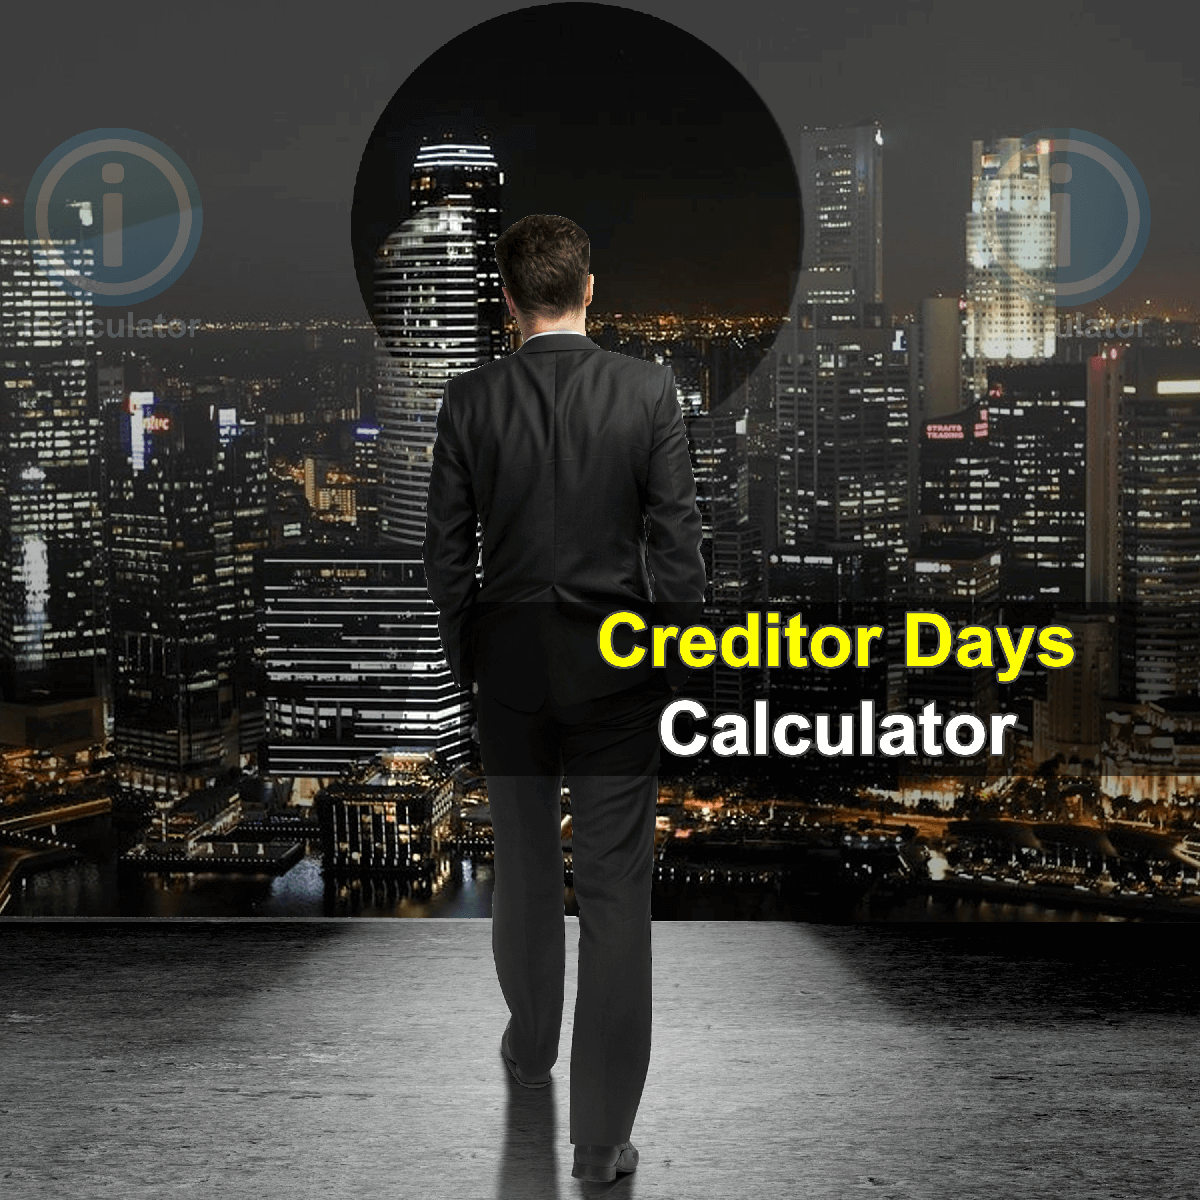 Creditor Days Calculator. This image provides details of how to calculate the creditor days using a calculator and notepad. By using the credit finance formula, the Creditor Days Calculator provides a true calculation of the average number of days a company takes to pay its bills and invoices to its creditors.